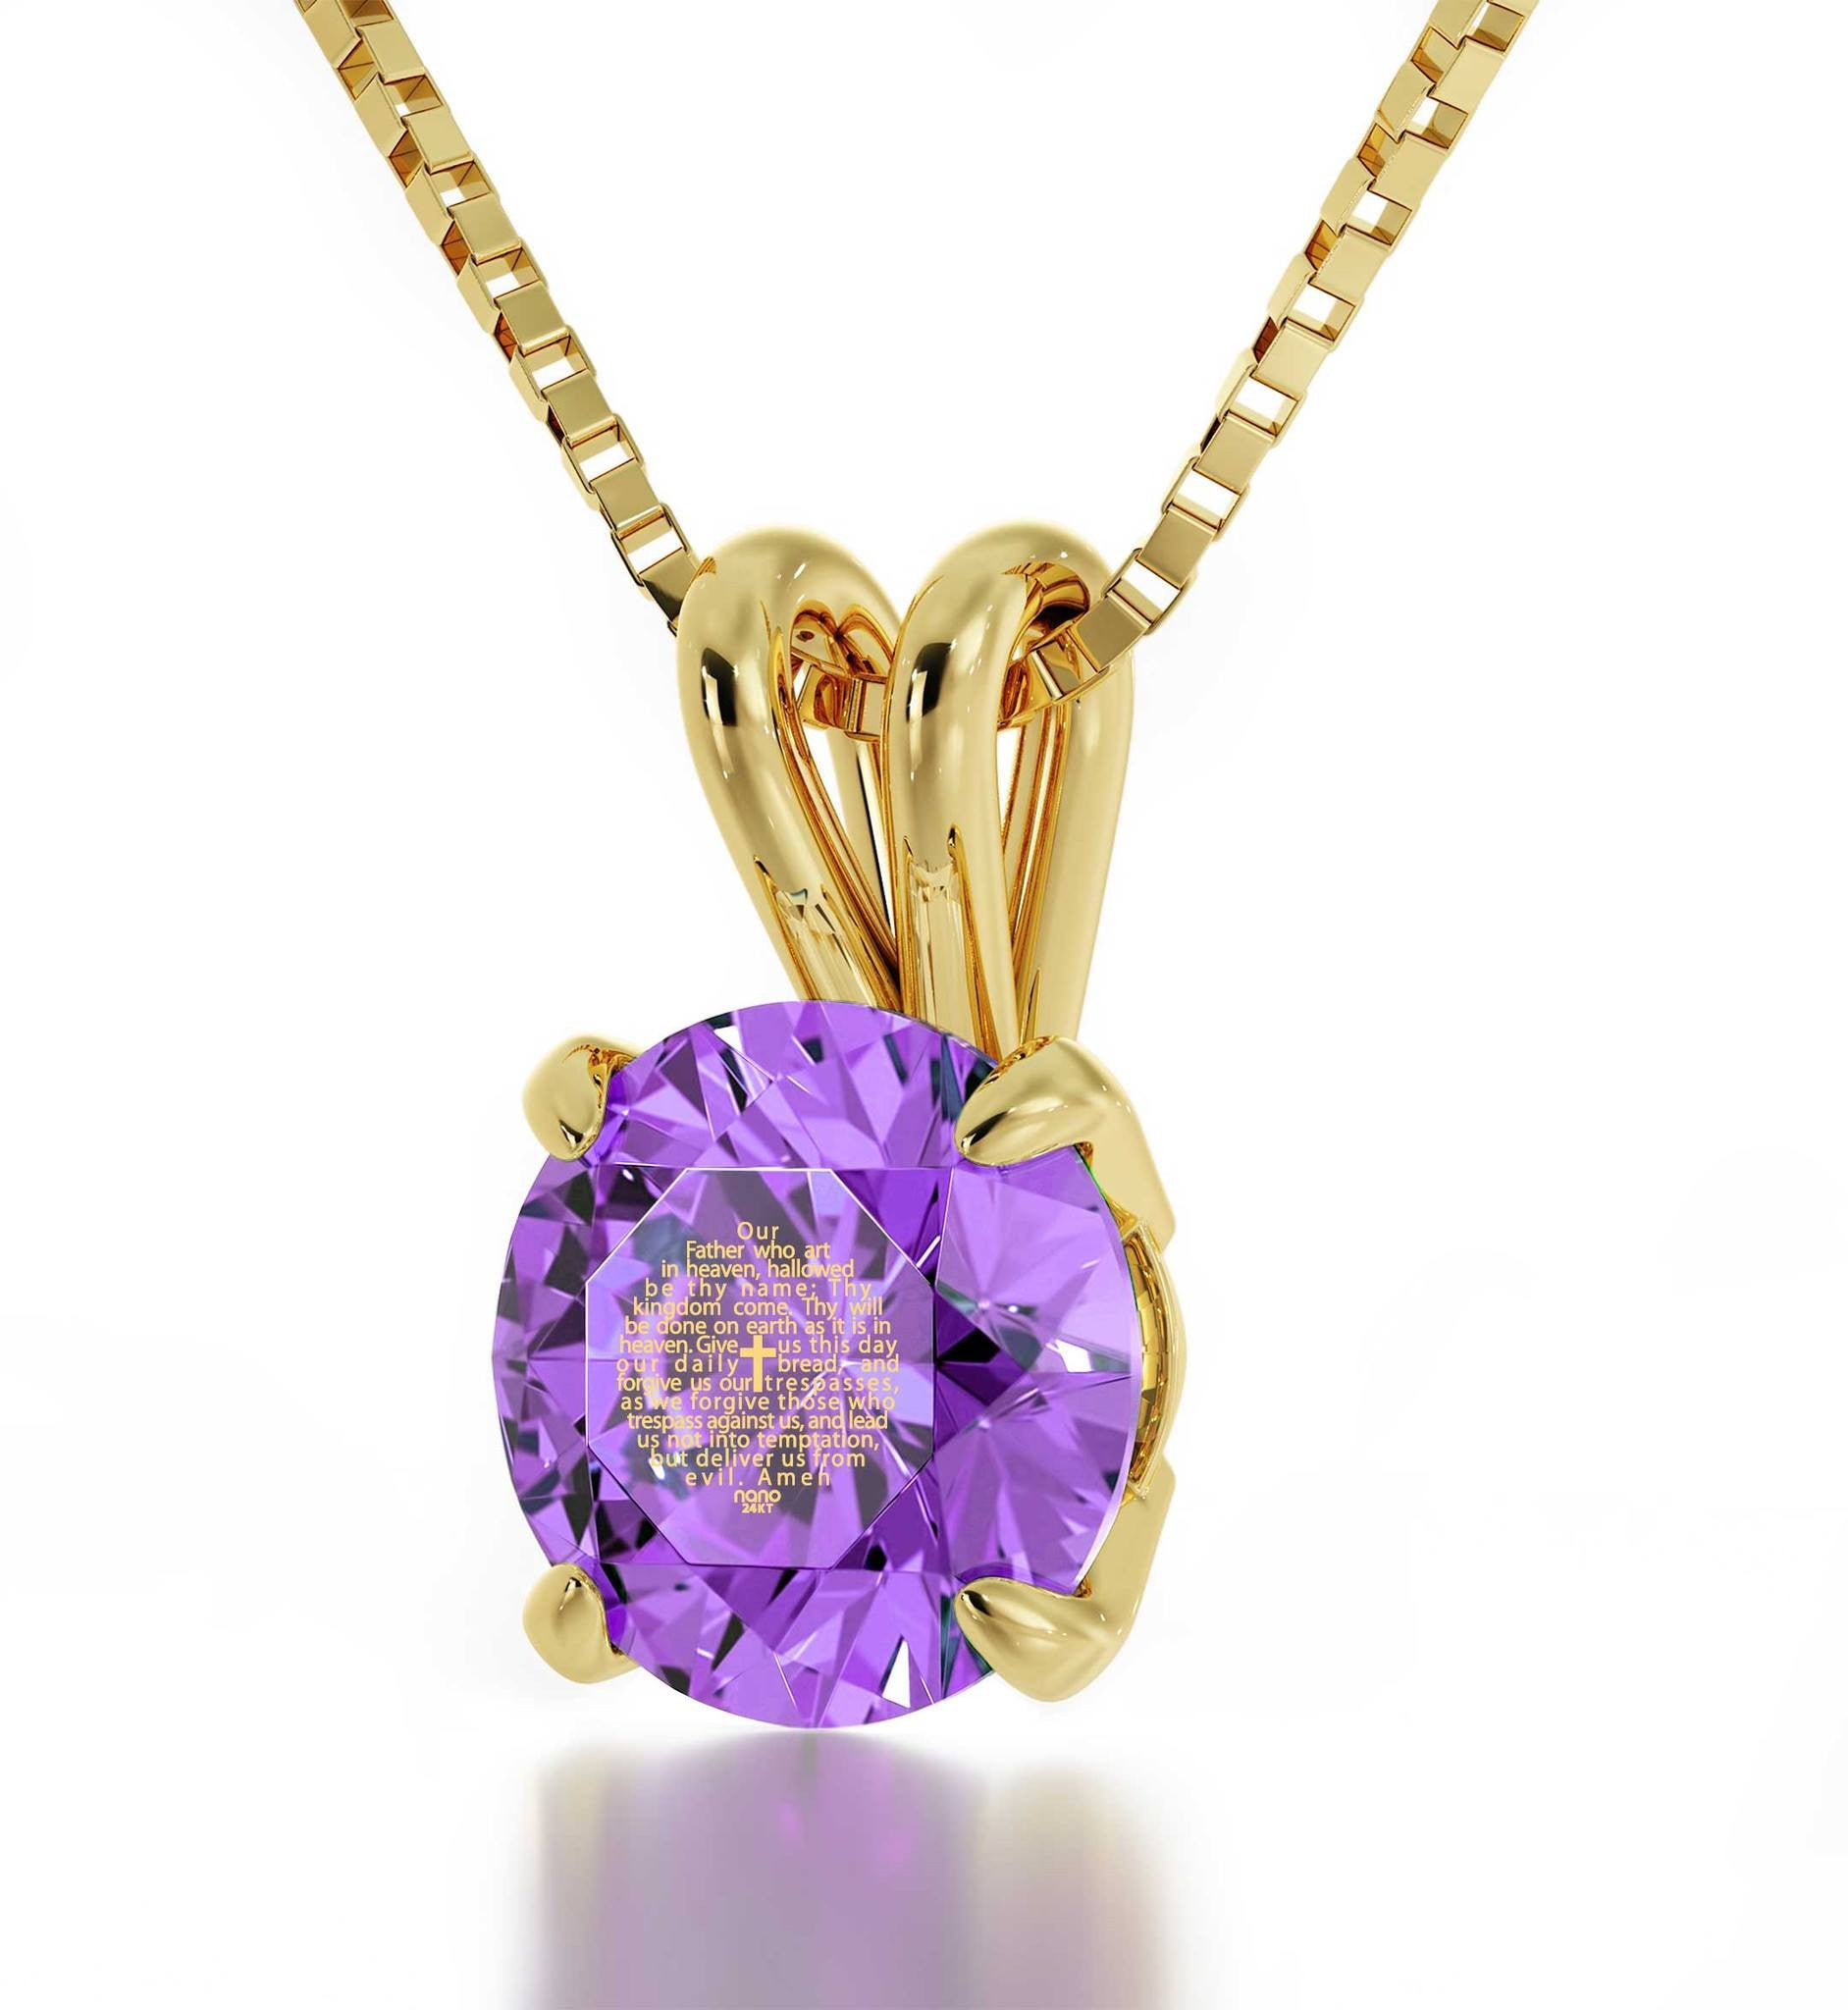 """Lord's Prayer in 24k Gold Imprint,Engraved Necklaces for Her, Gifts for Catholics, Purple Pendant"""